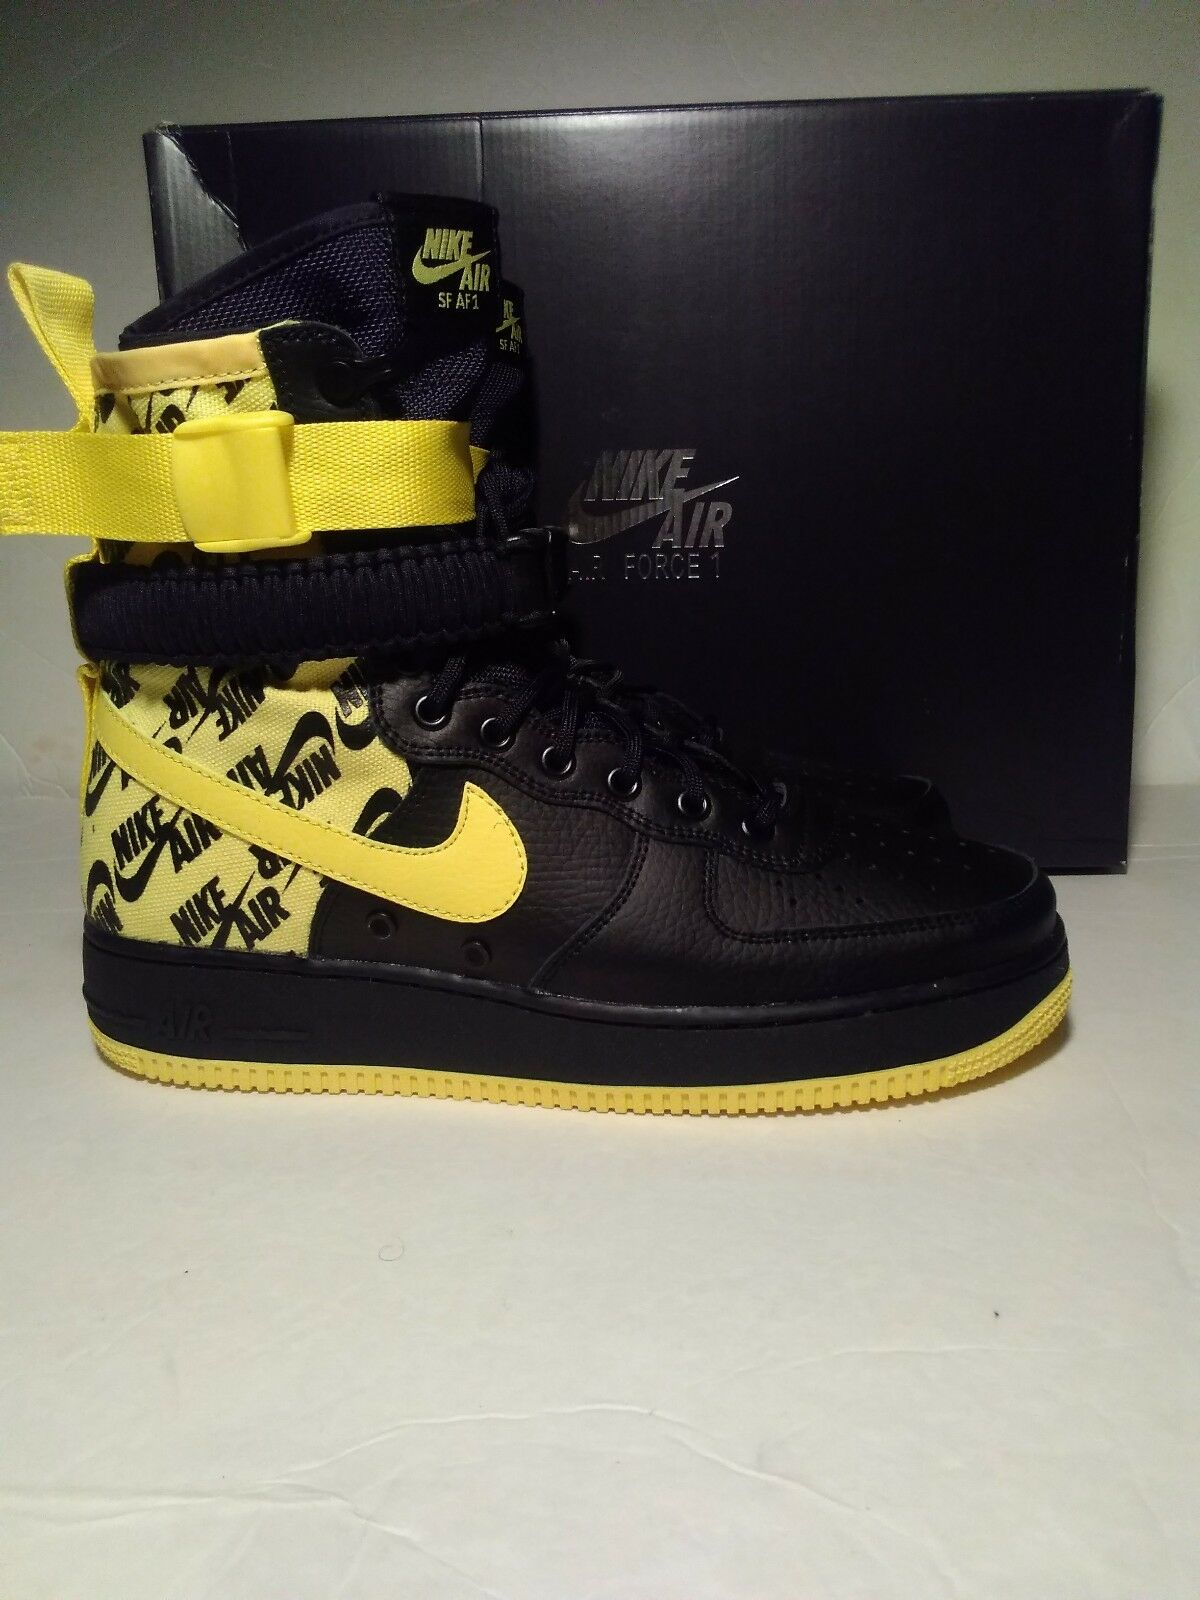 Nike Air Force 1 High SF AF1 Special Field Yellow Logos AR1955-001Men Size 13